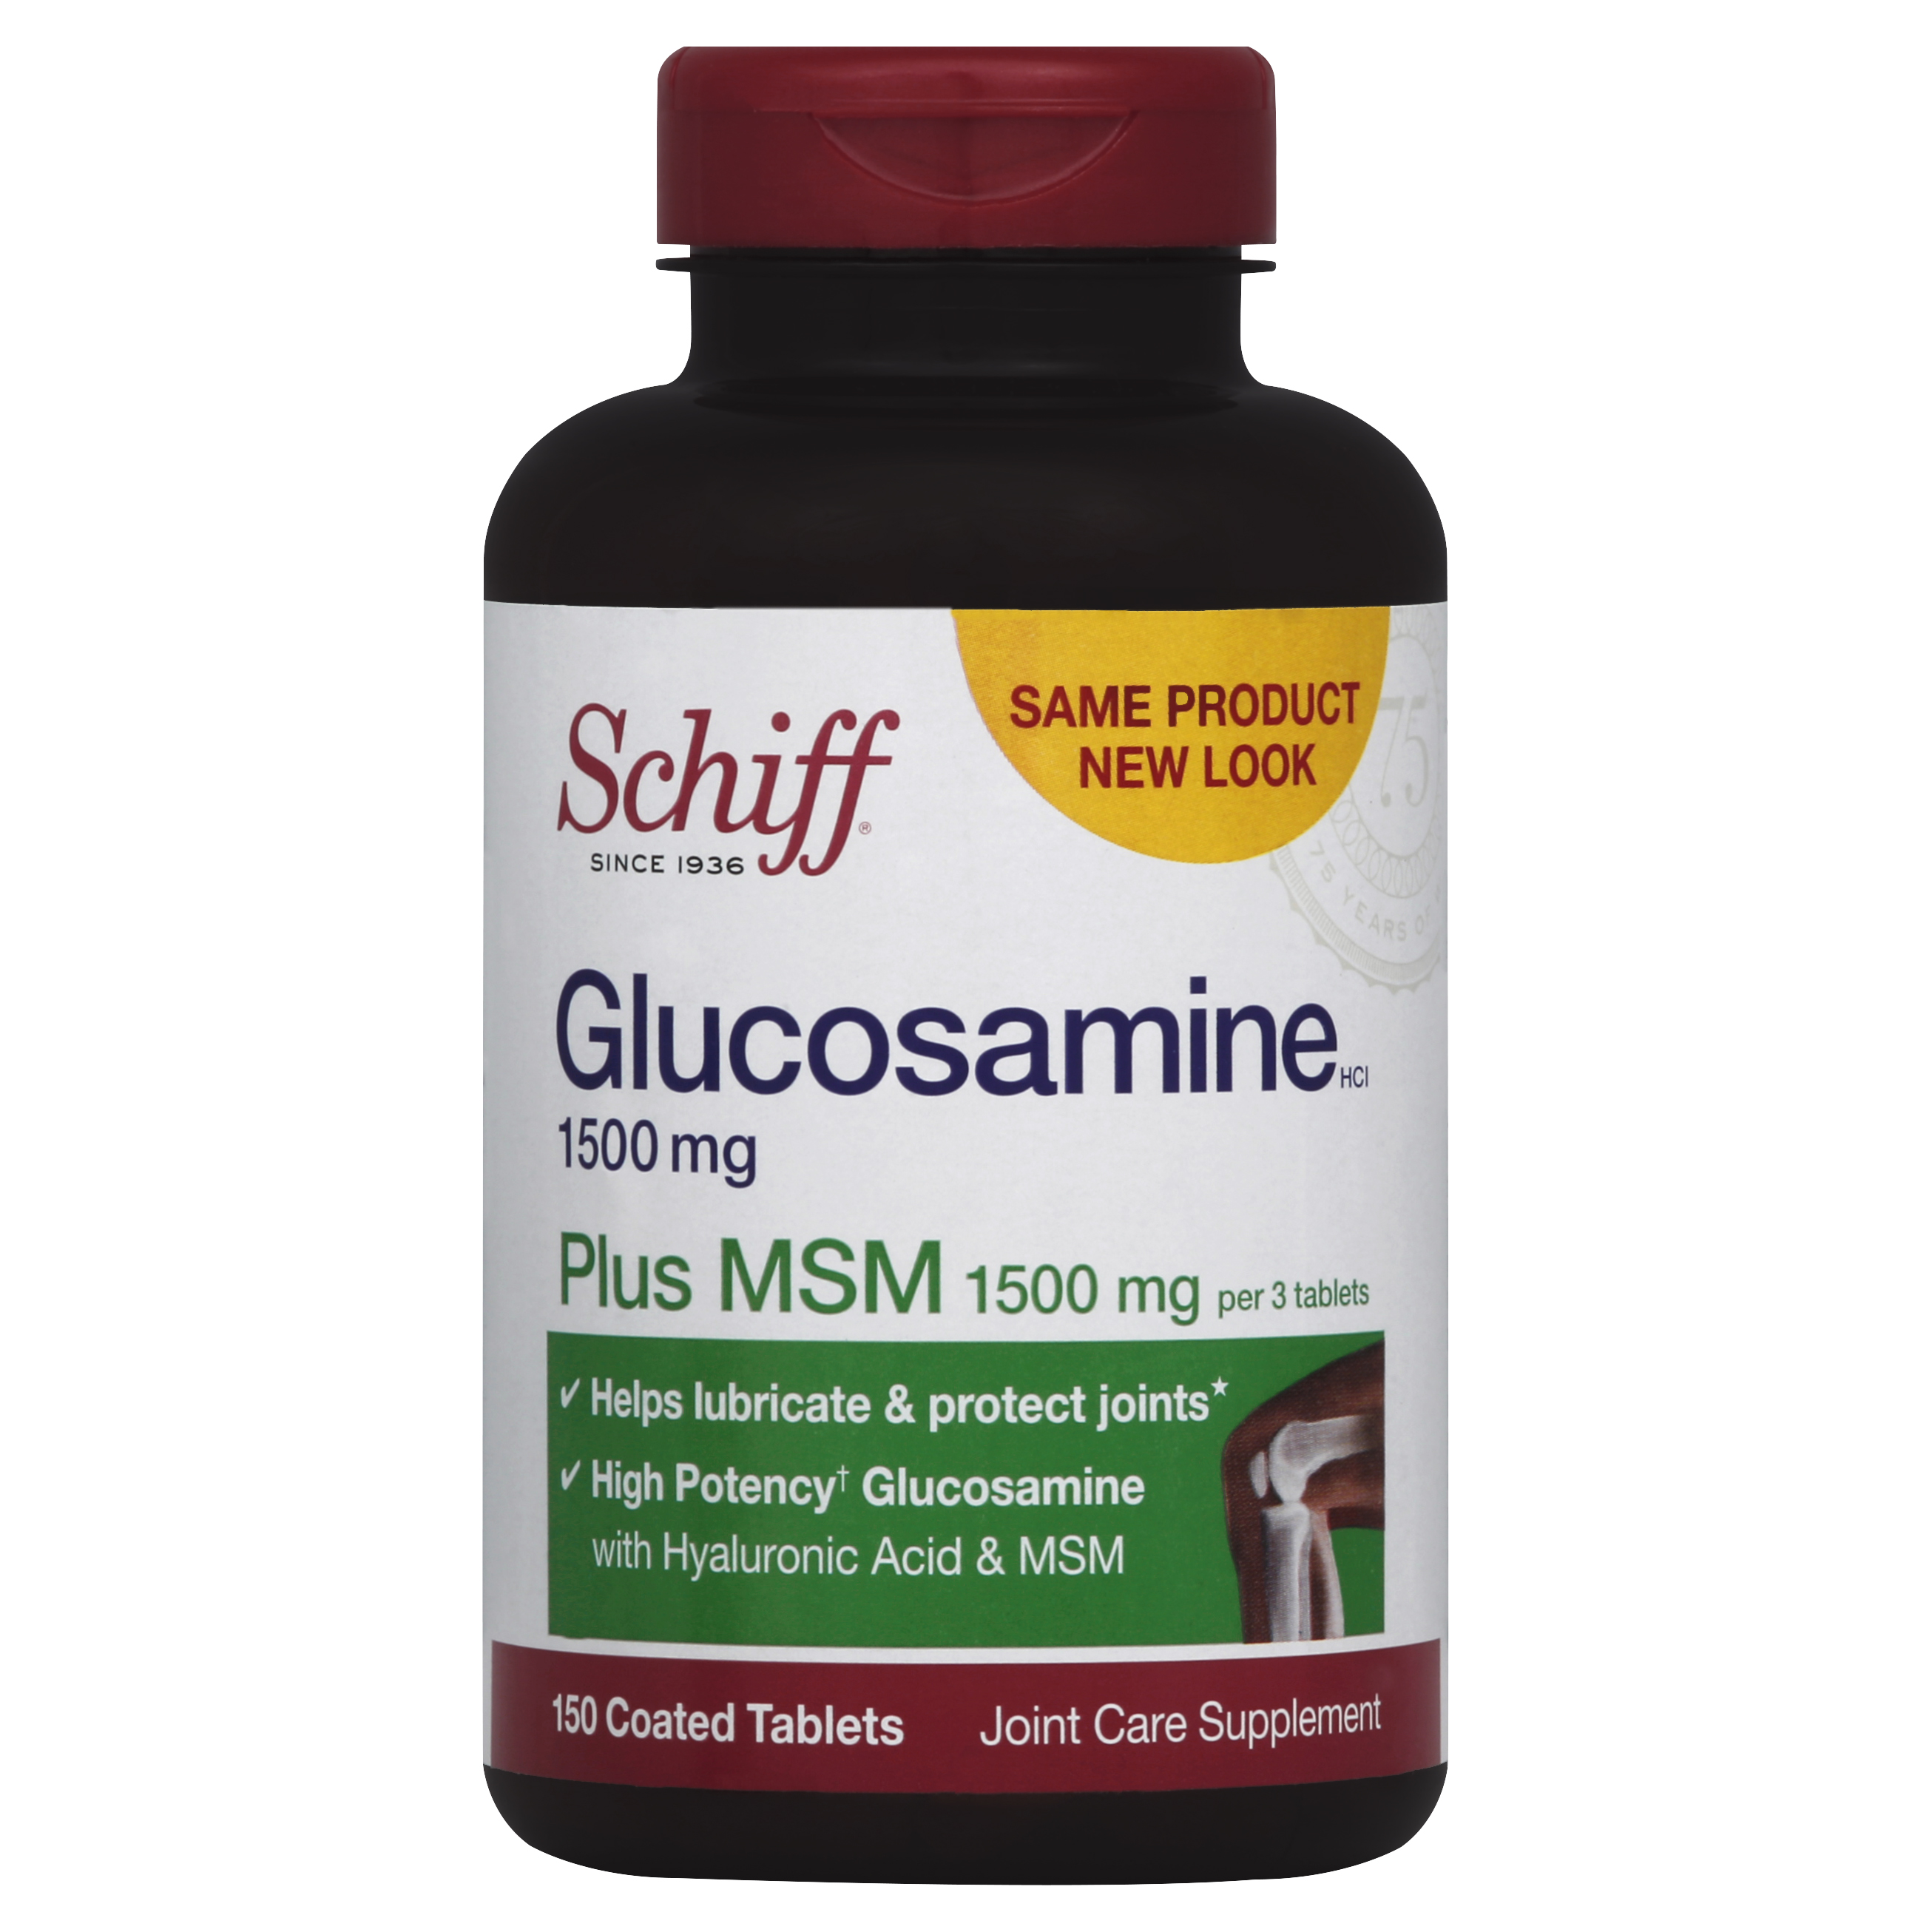 Schiff Glucosamine 1500mg Plus MSM 1500mg and Hyaluronic Acid, Joint Supplement, 150 Count